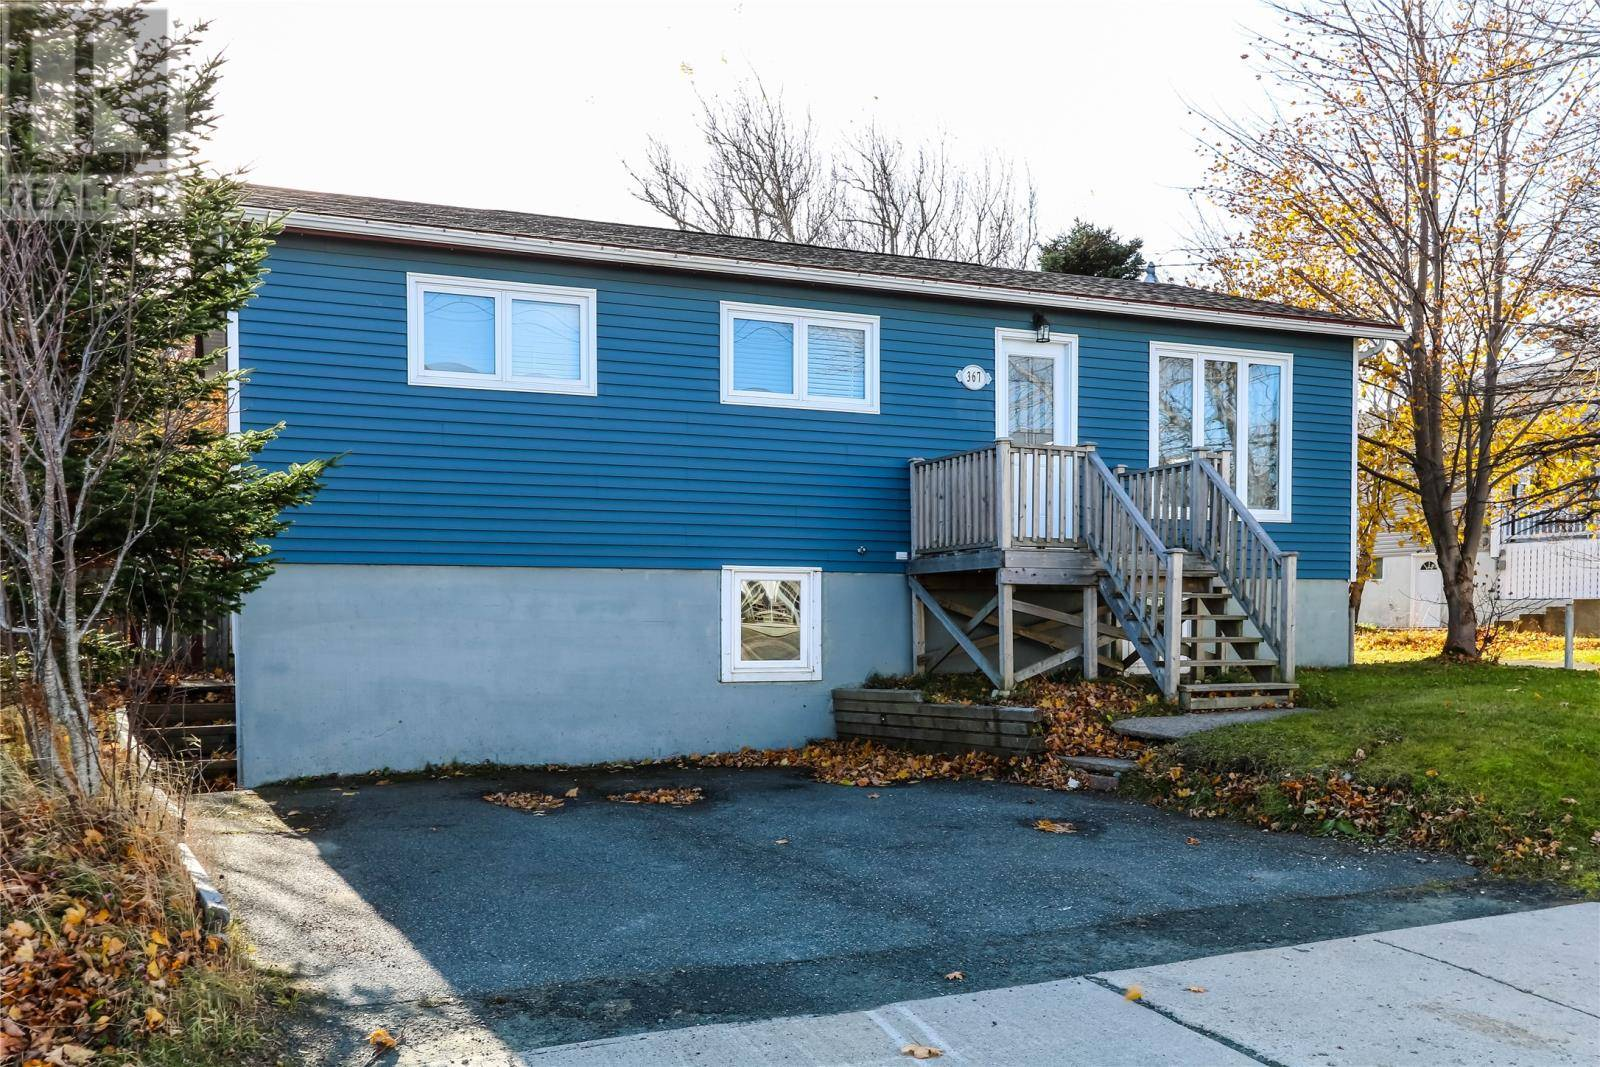 House for sale at 367 Blackmarsh Rd St. John's Newfoundland - MLS: 1206985